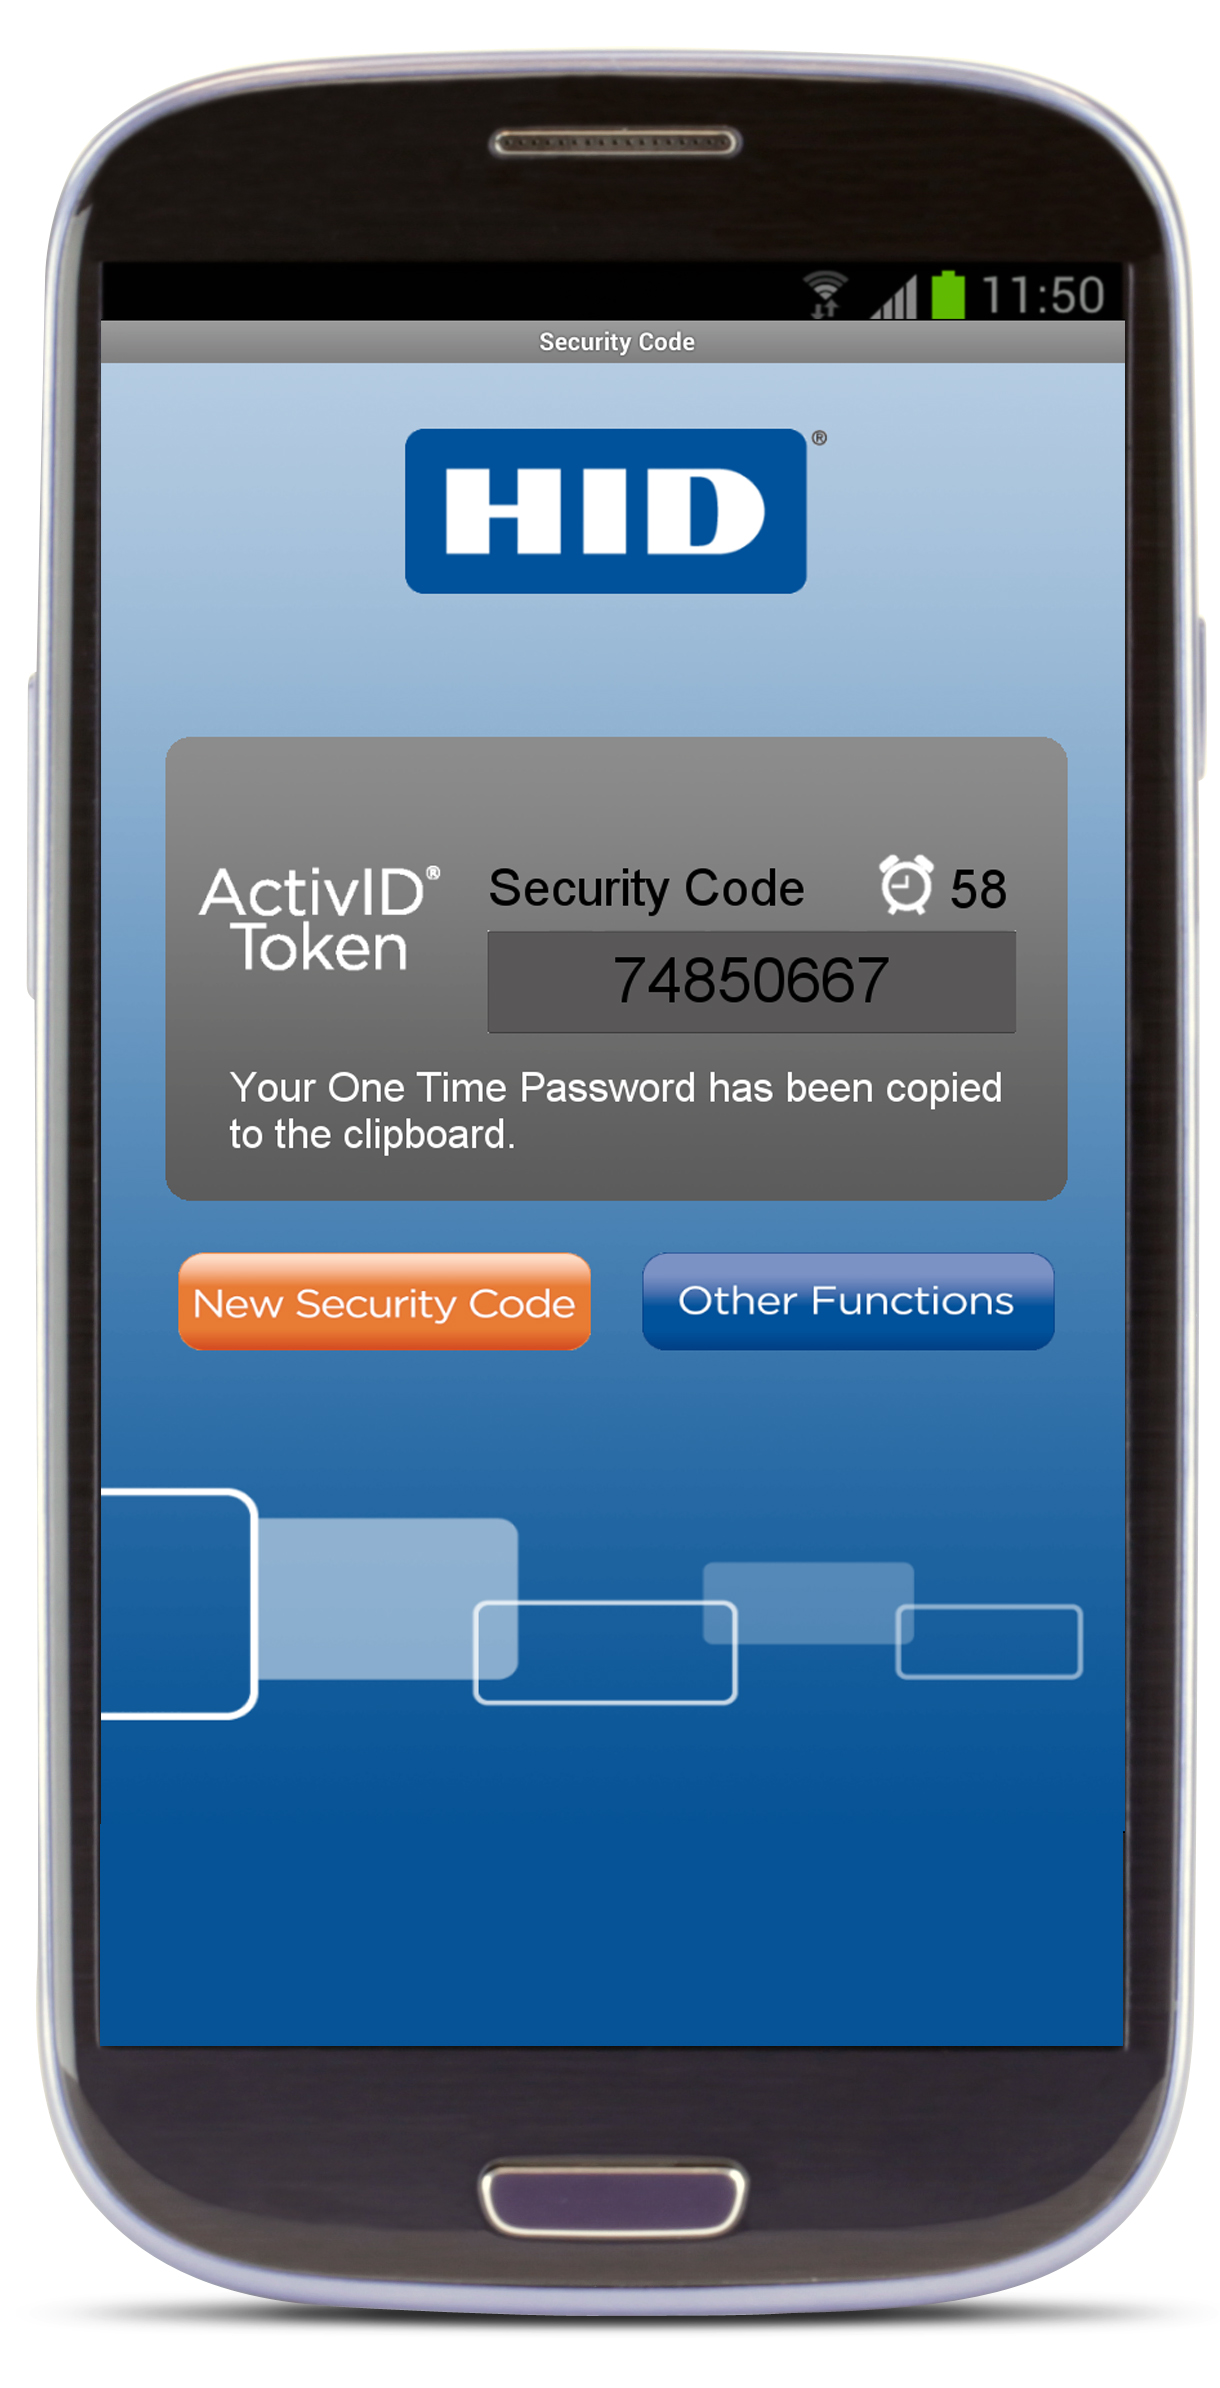 HID soft-token mobile phone screenshot V1